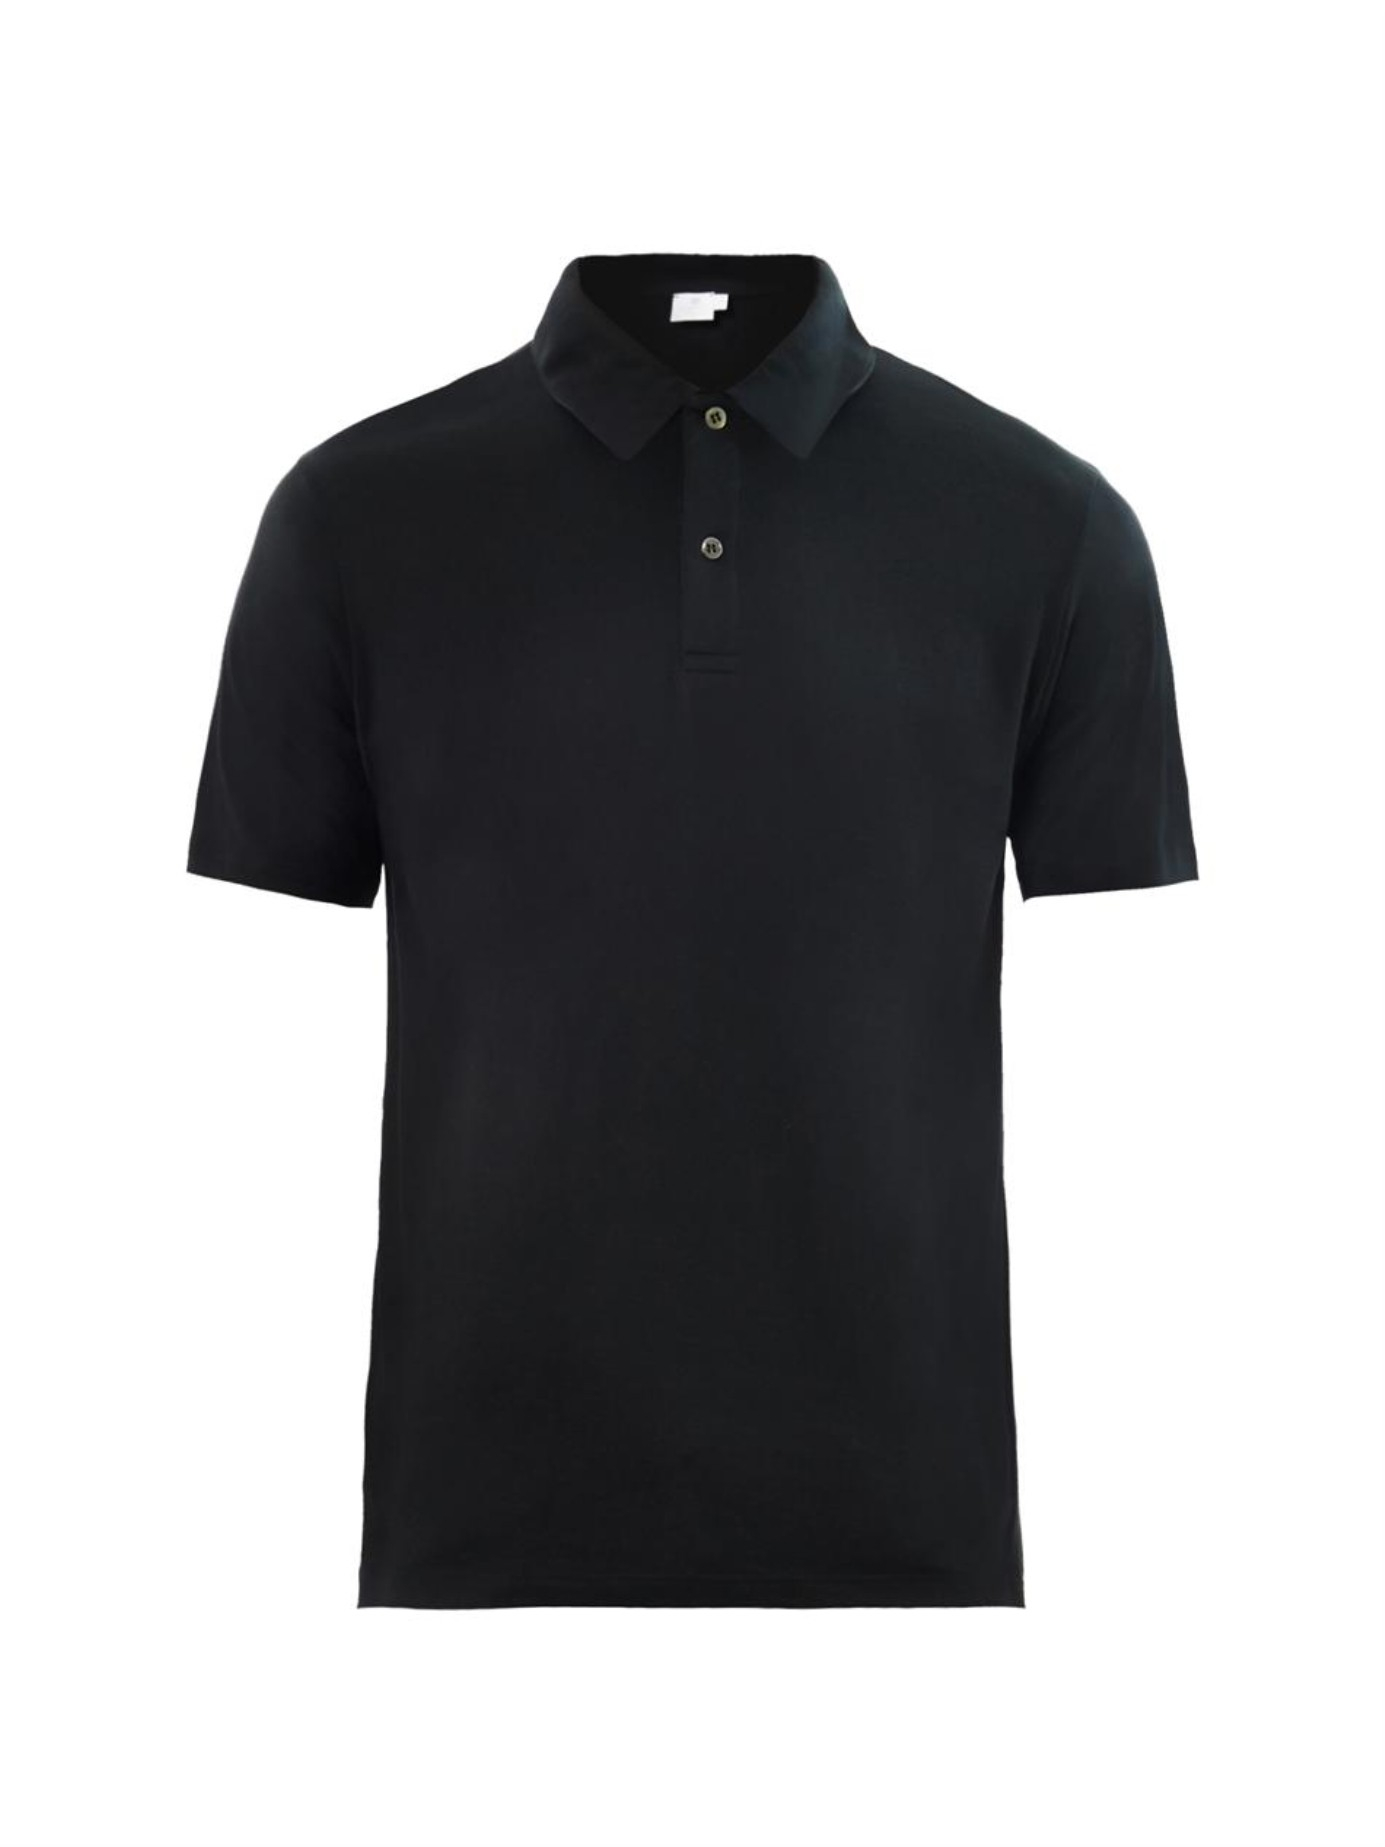 Shop Target for Polo Shirts you will love at great low prices. Spend $35+ or use your REDcard & get free 2-day shipping on most items or same-day pick-up in store.